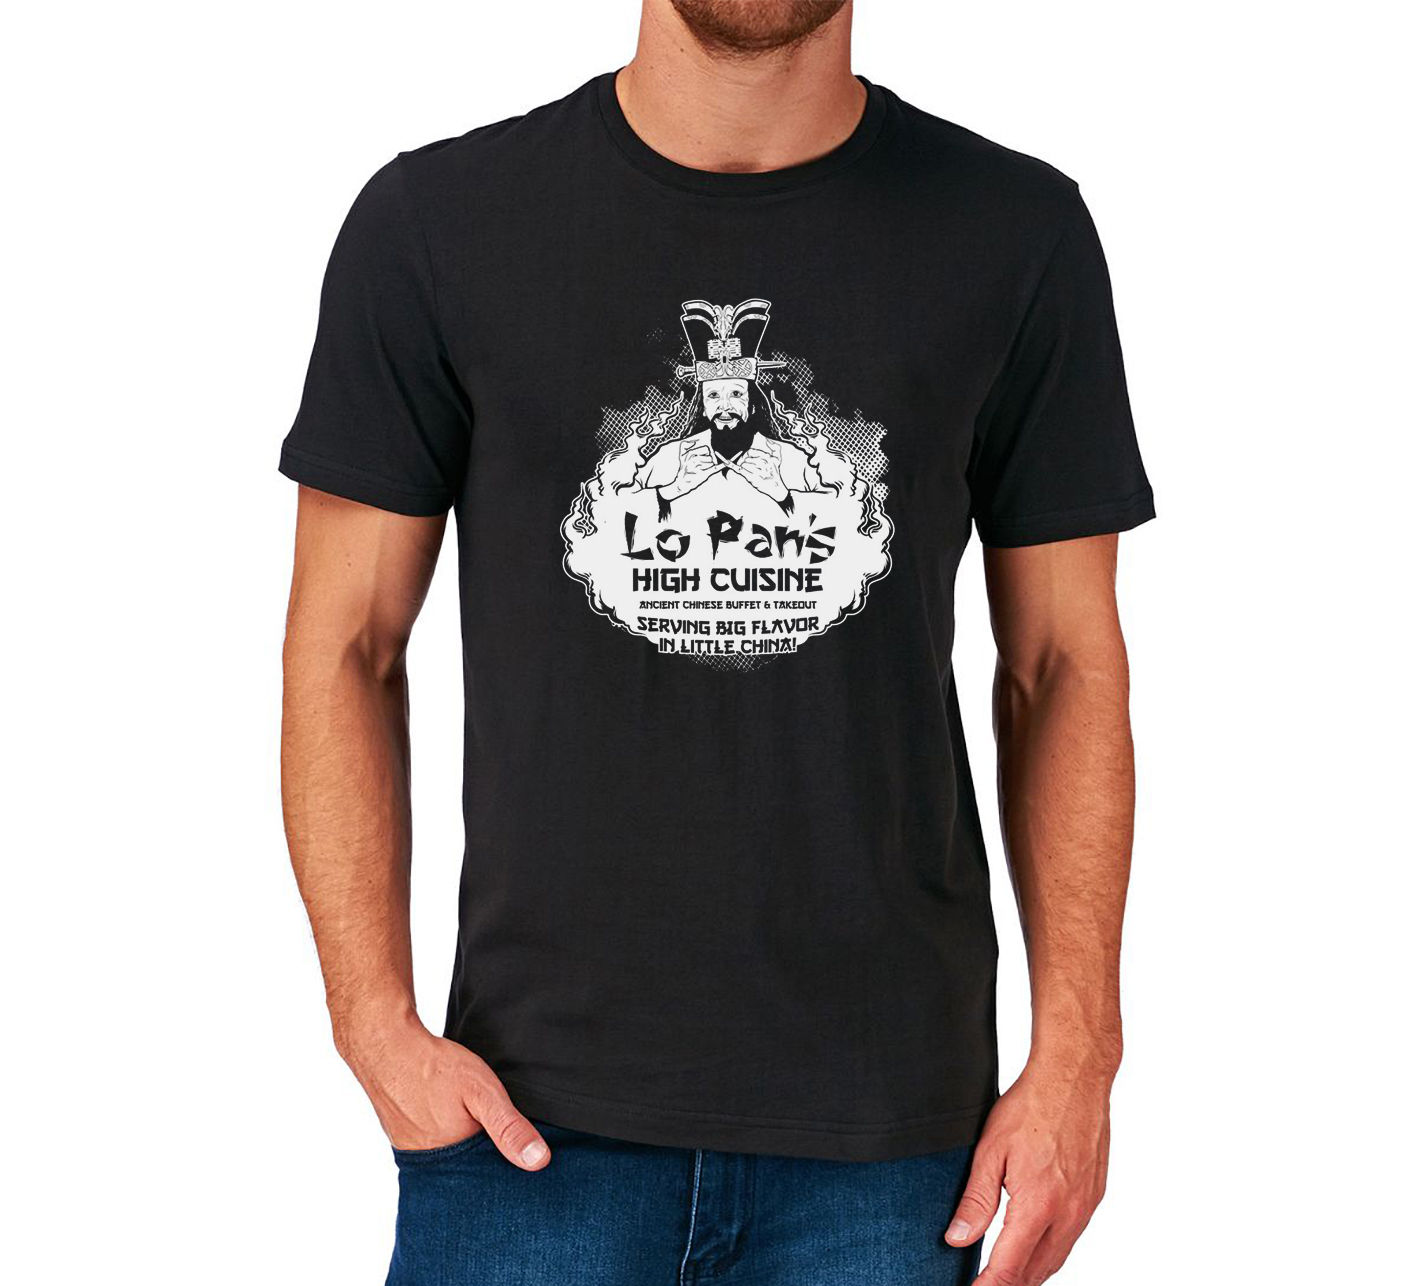 Big Trouble In Little China T Shirt Lo Pan S Cuisine 1980 S Film Kurt Russell